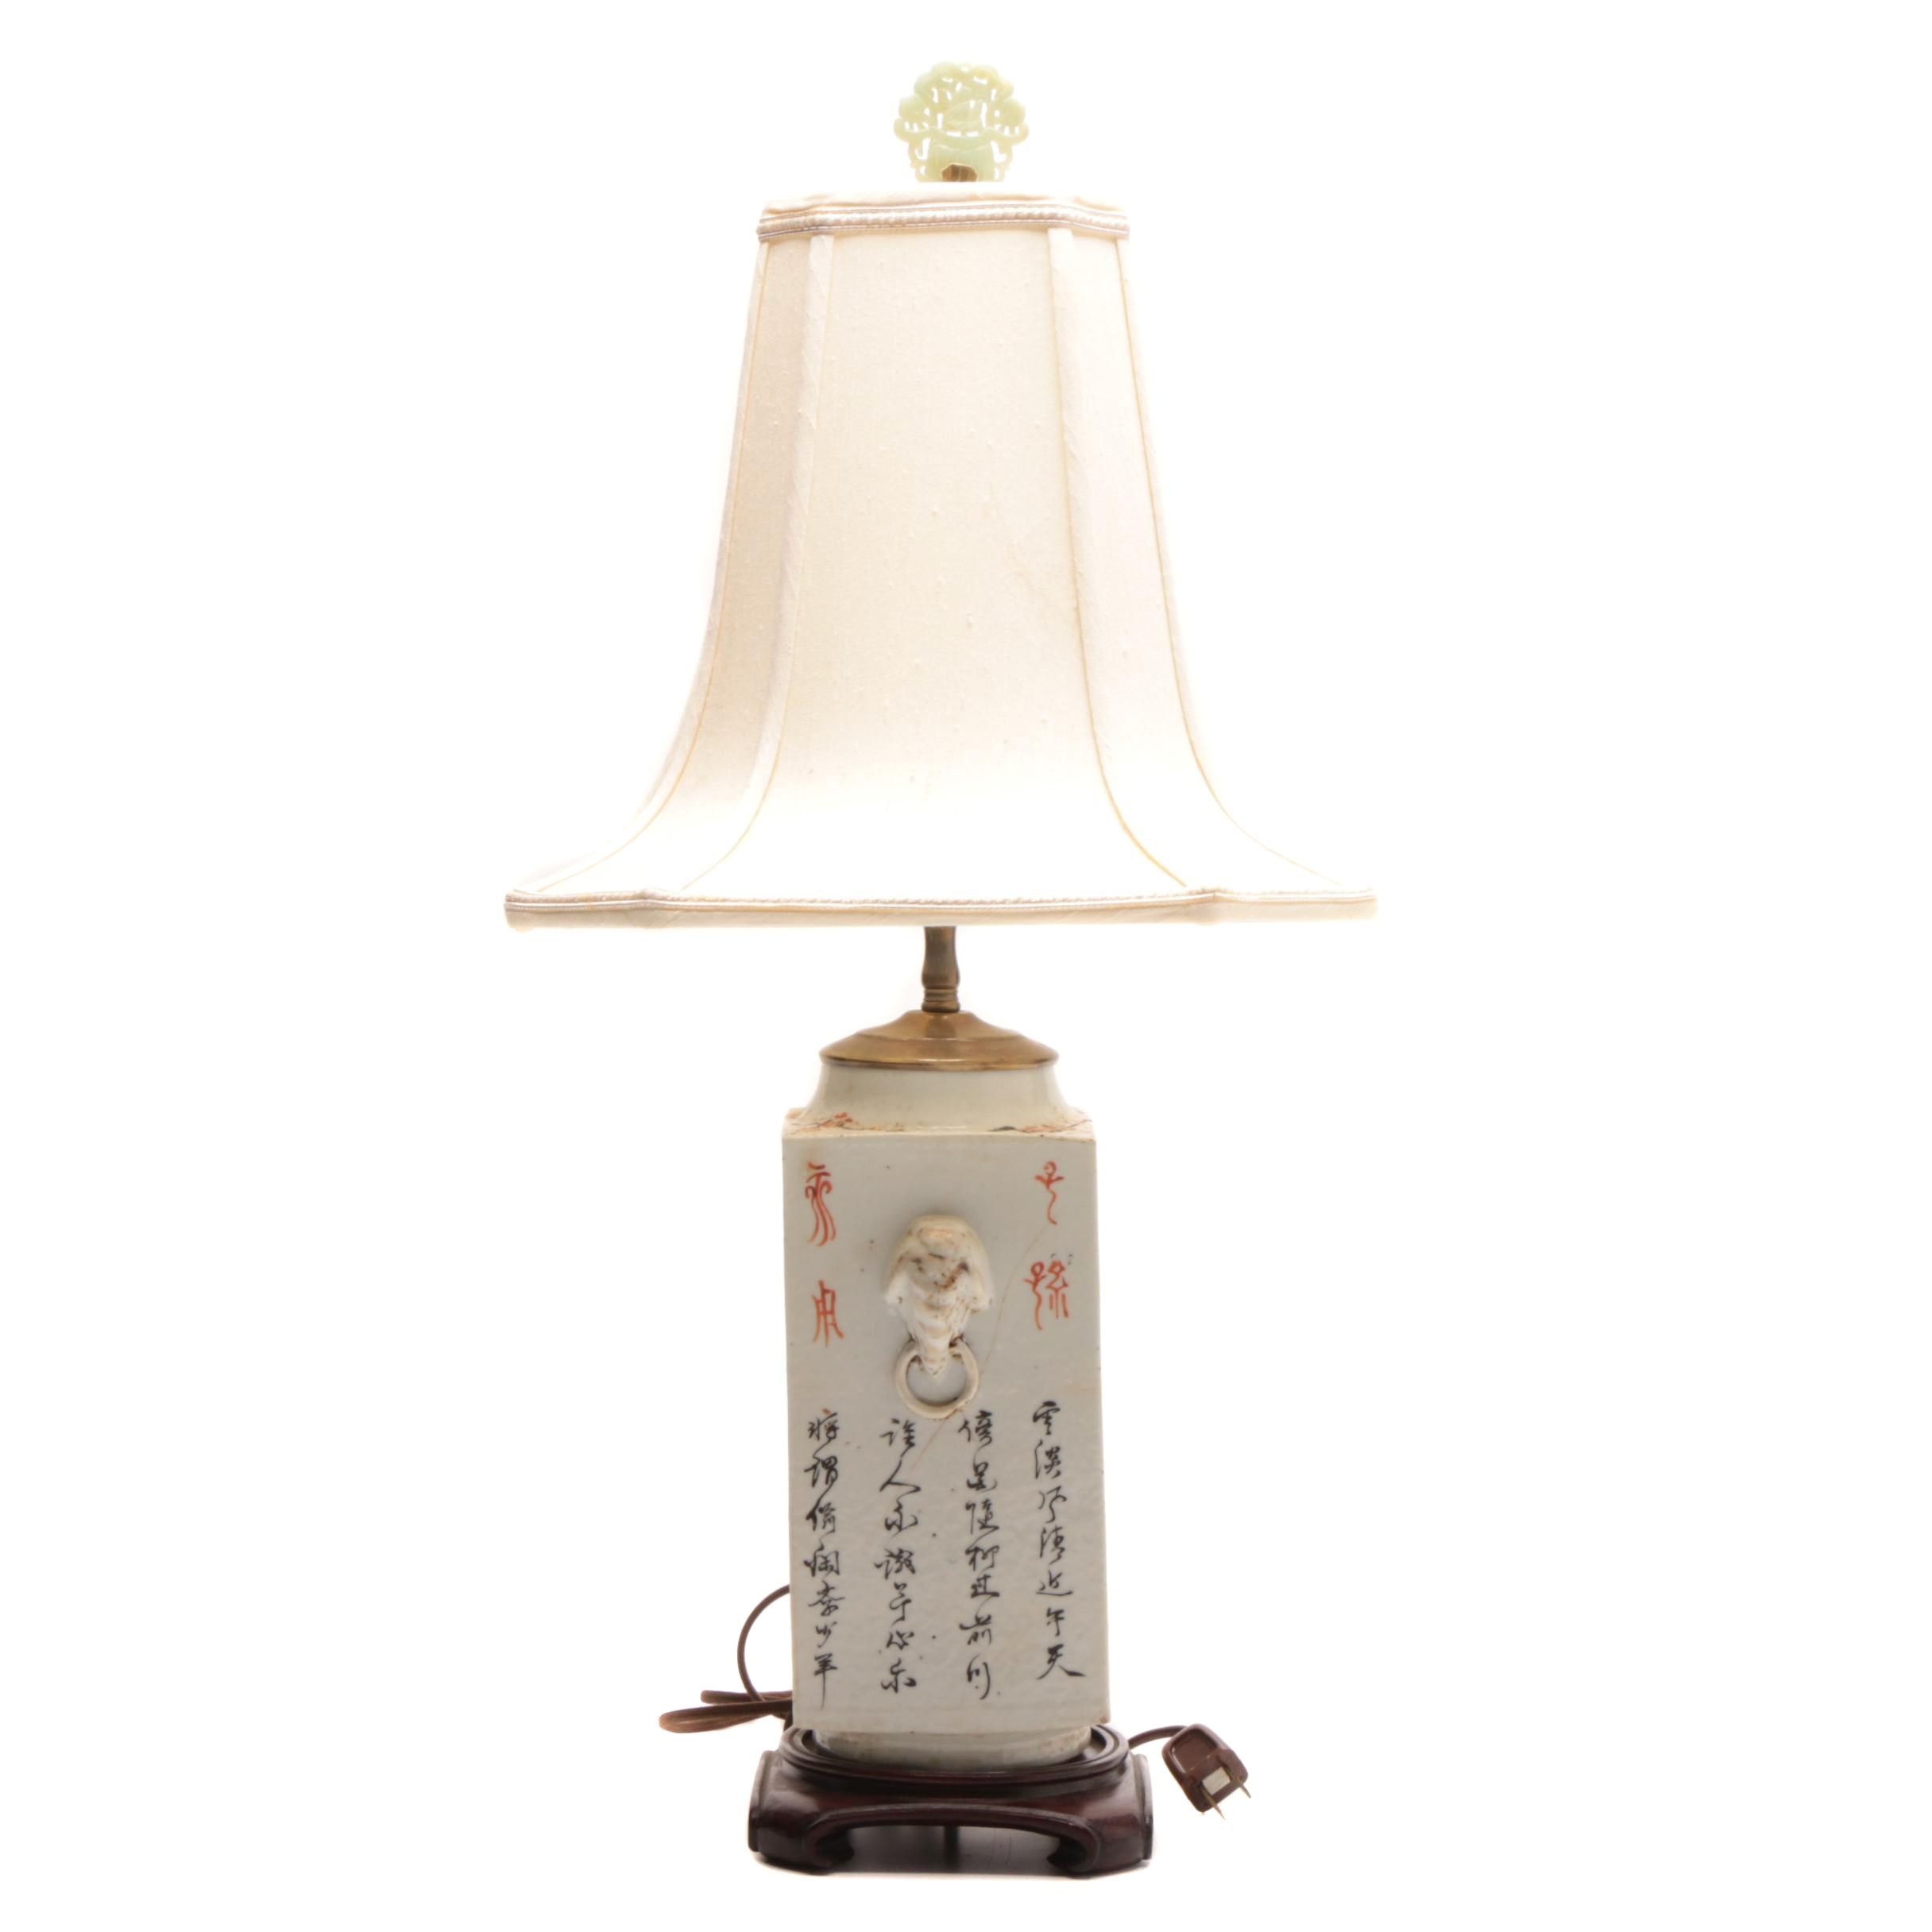 Ceramic Chinese Vase Table Lamp